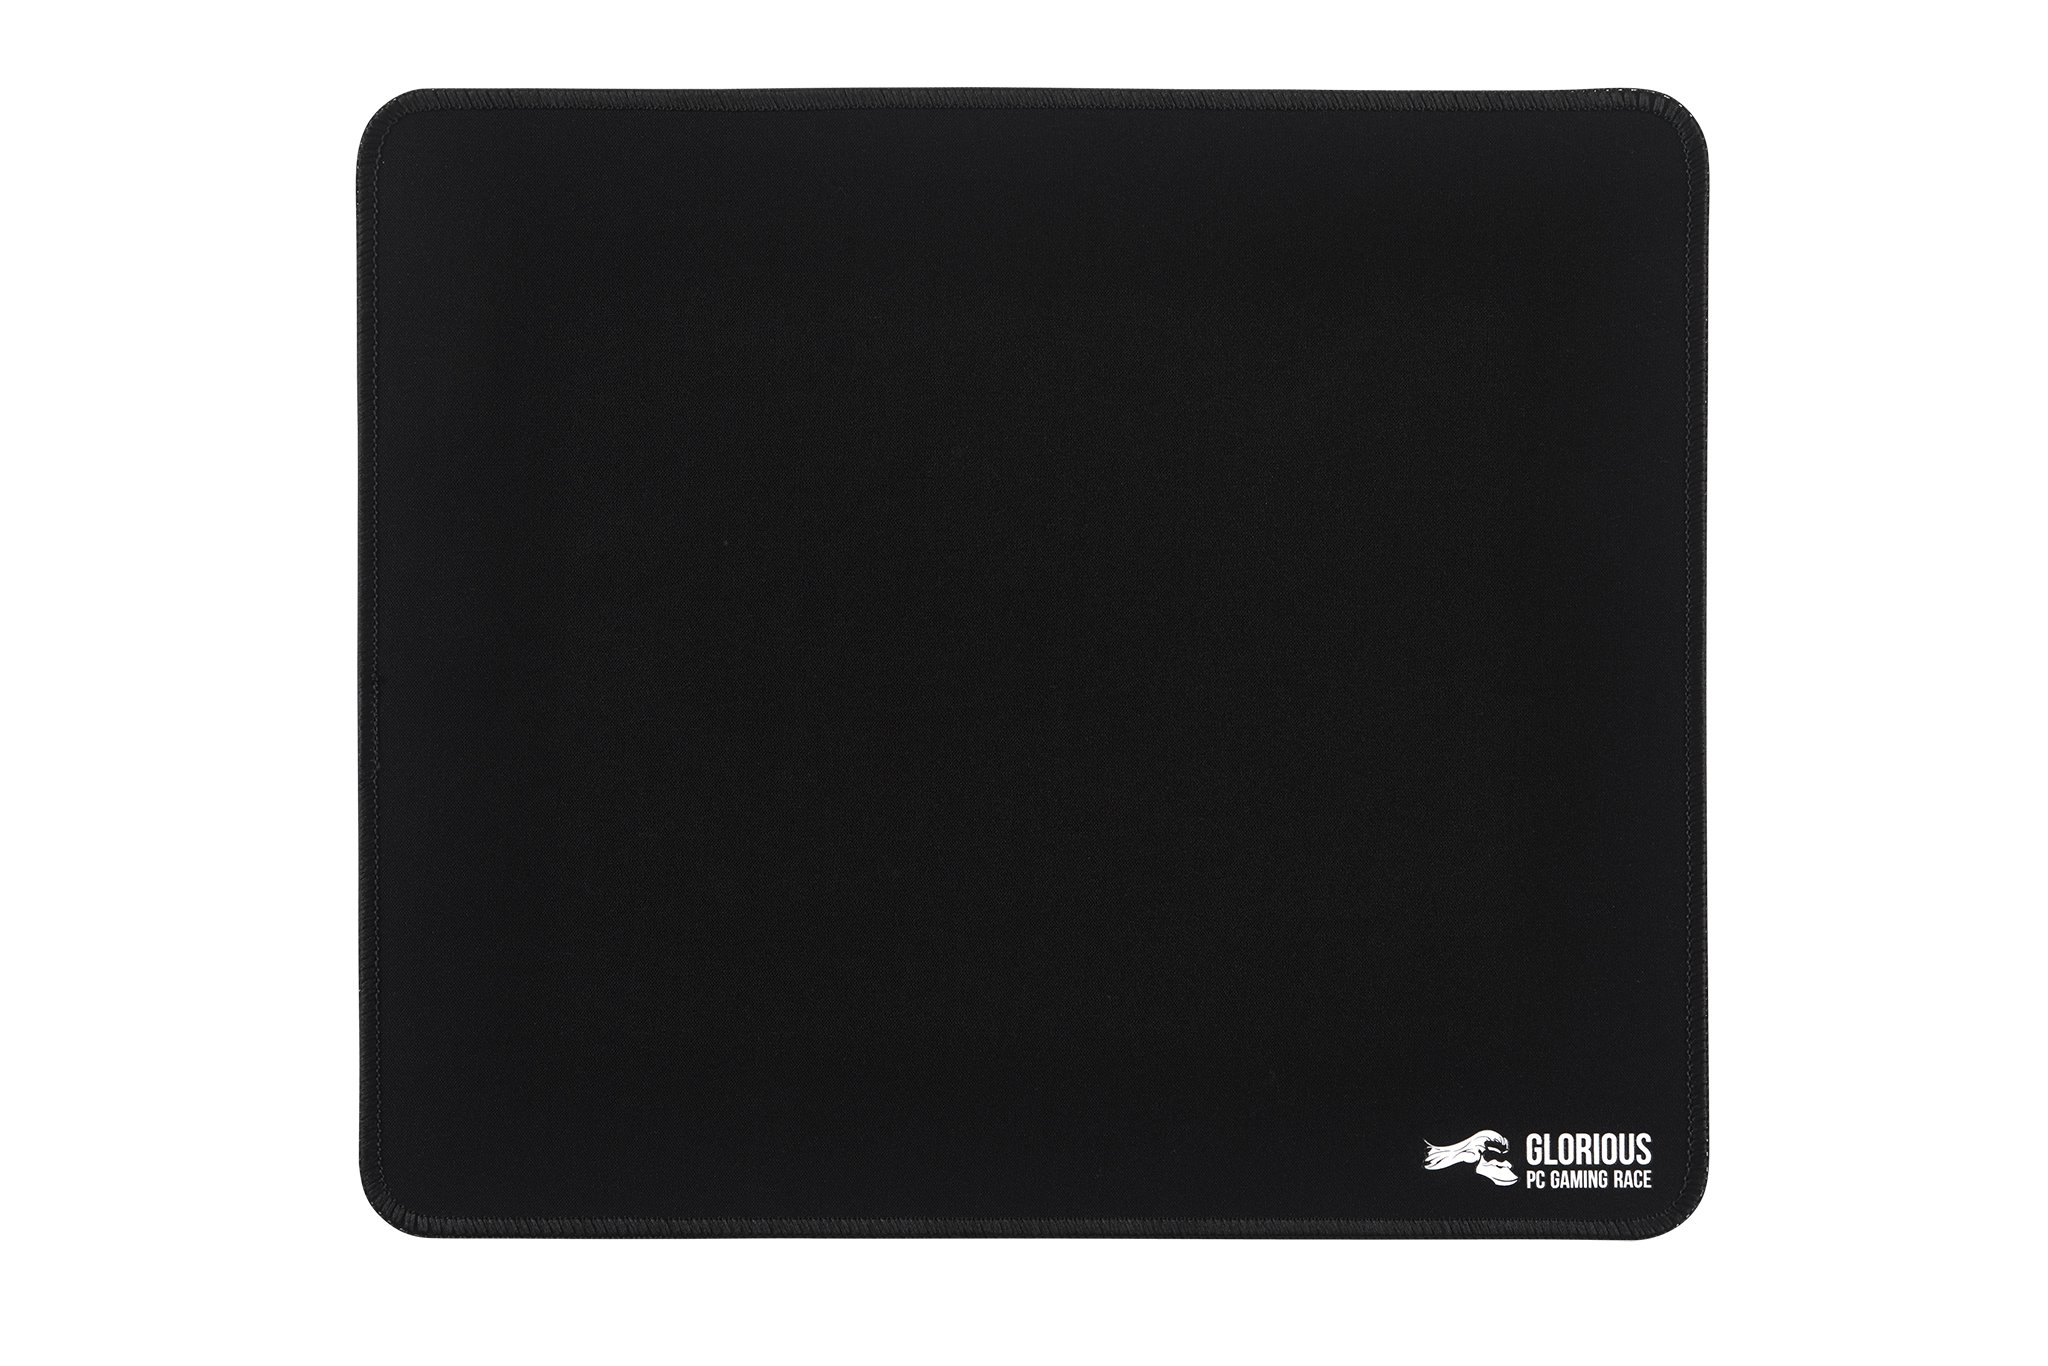 Glorious Large Gaming Mouse Mat/Pad - Stitched Edges, Black Cloth Mousepad   11x13 (G-L)